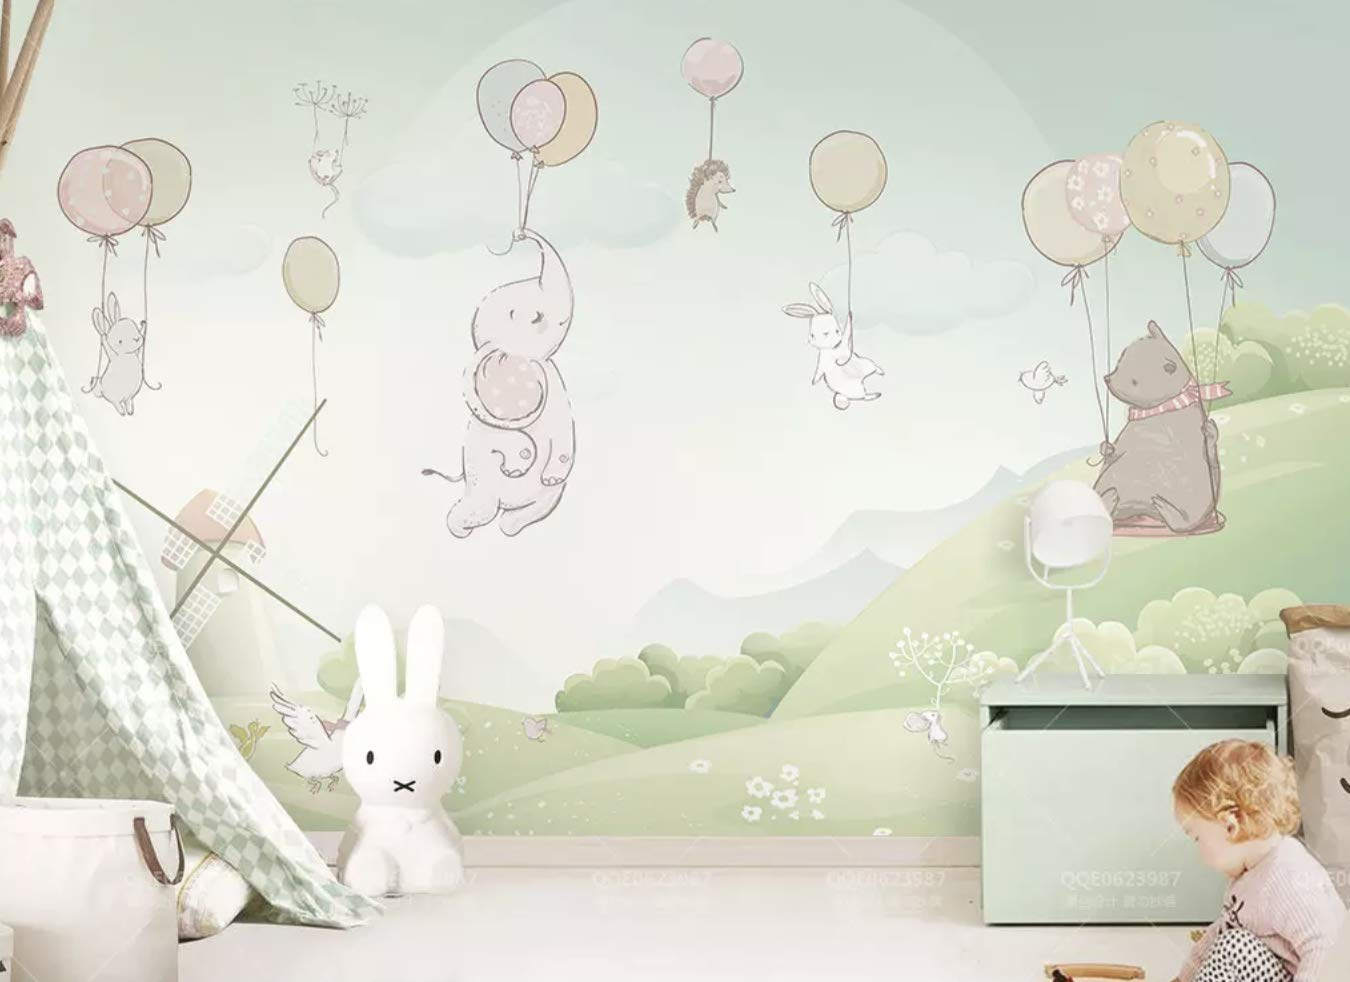 Amazon.com: Murwall Kids Wallpaper Little Elephant Wall Mural